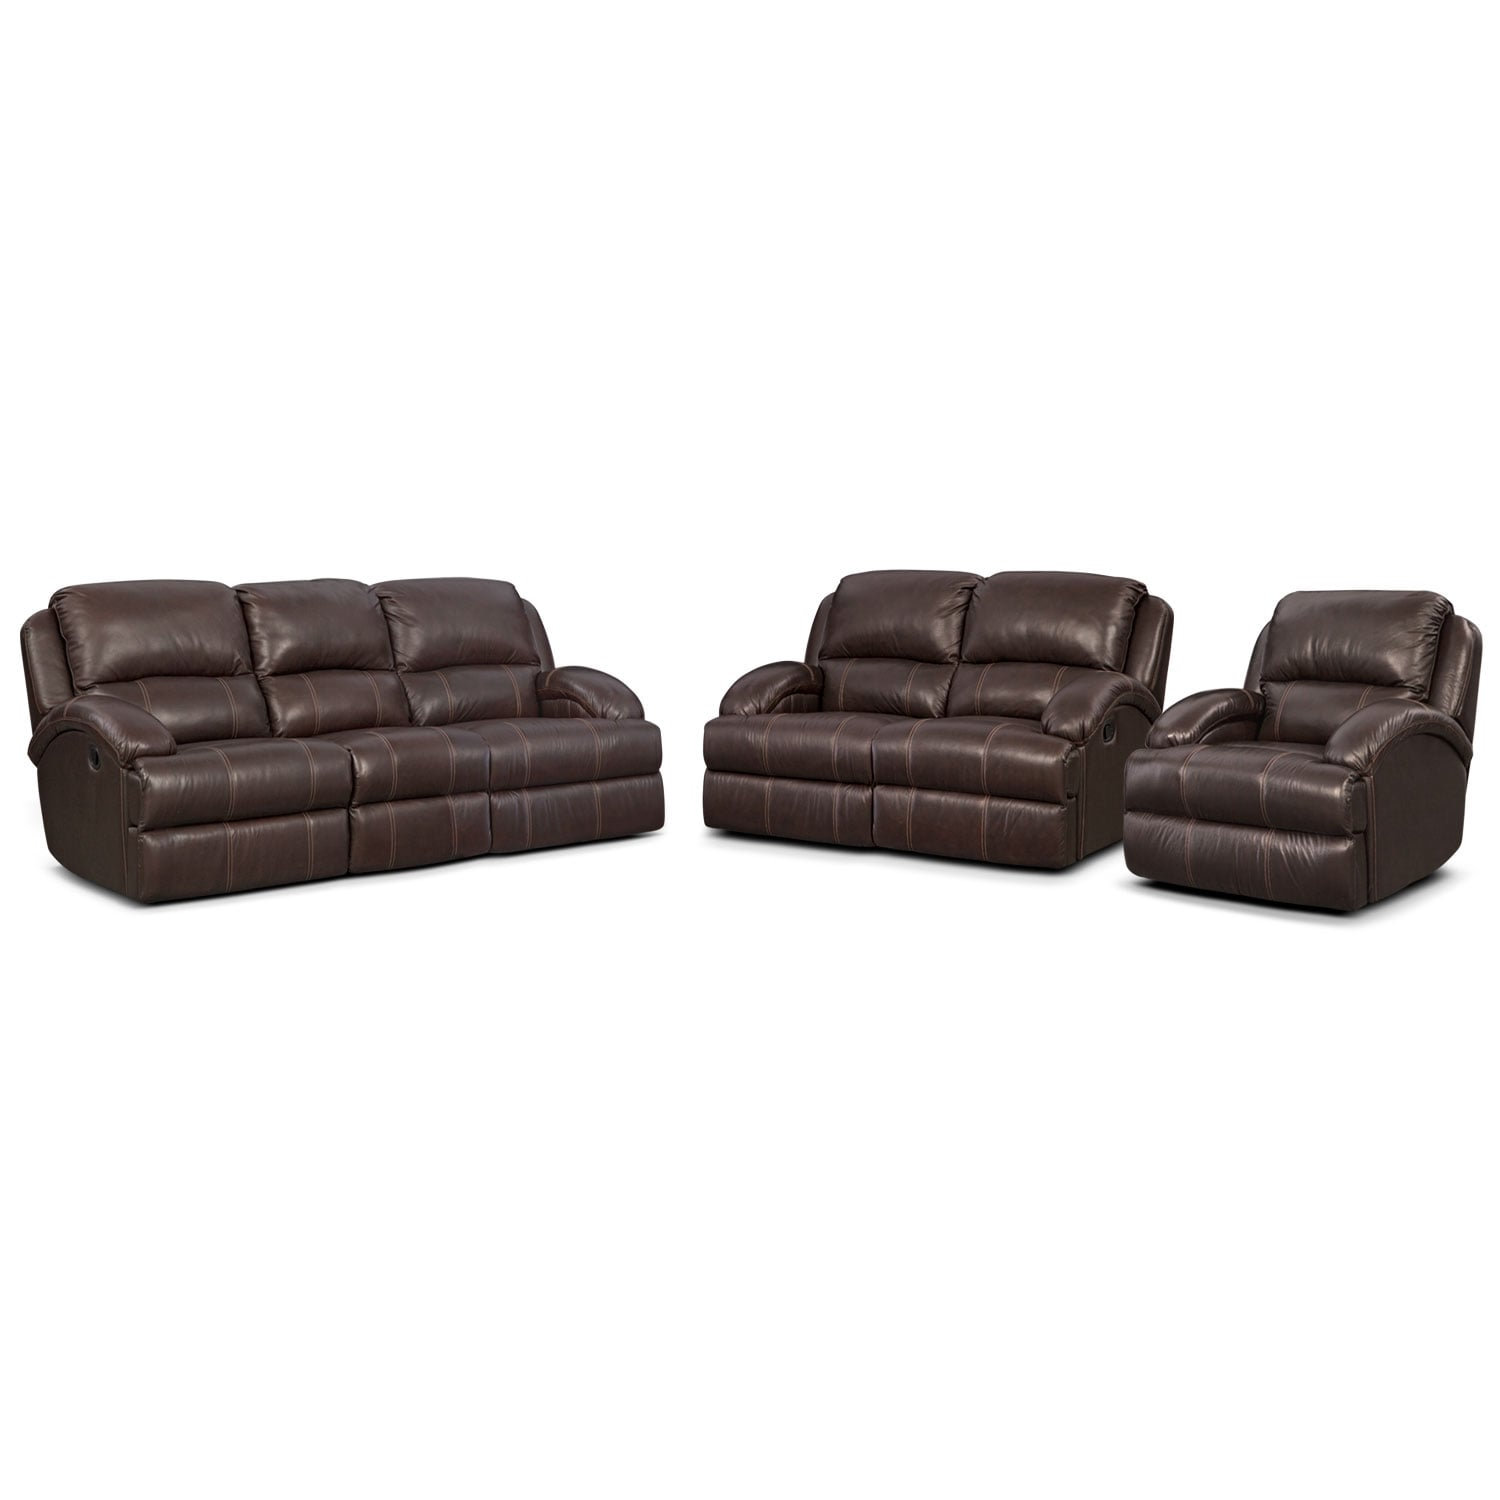 Nolan Dual Reclining Sofa, Reclining Loveseat and Glider Recliner Set - Chocolate